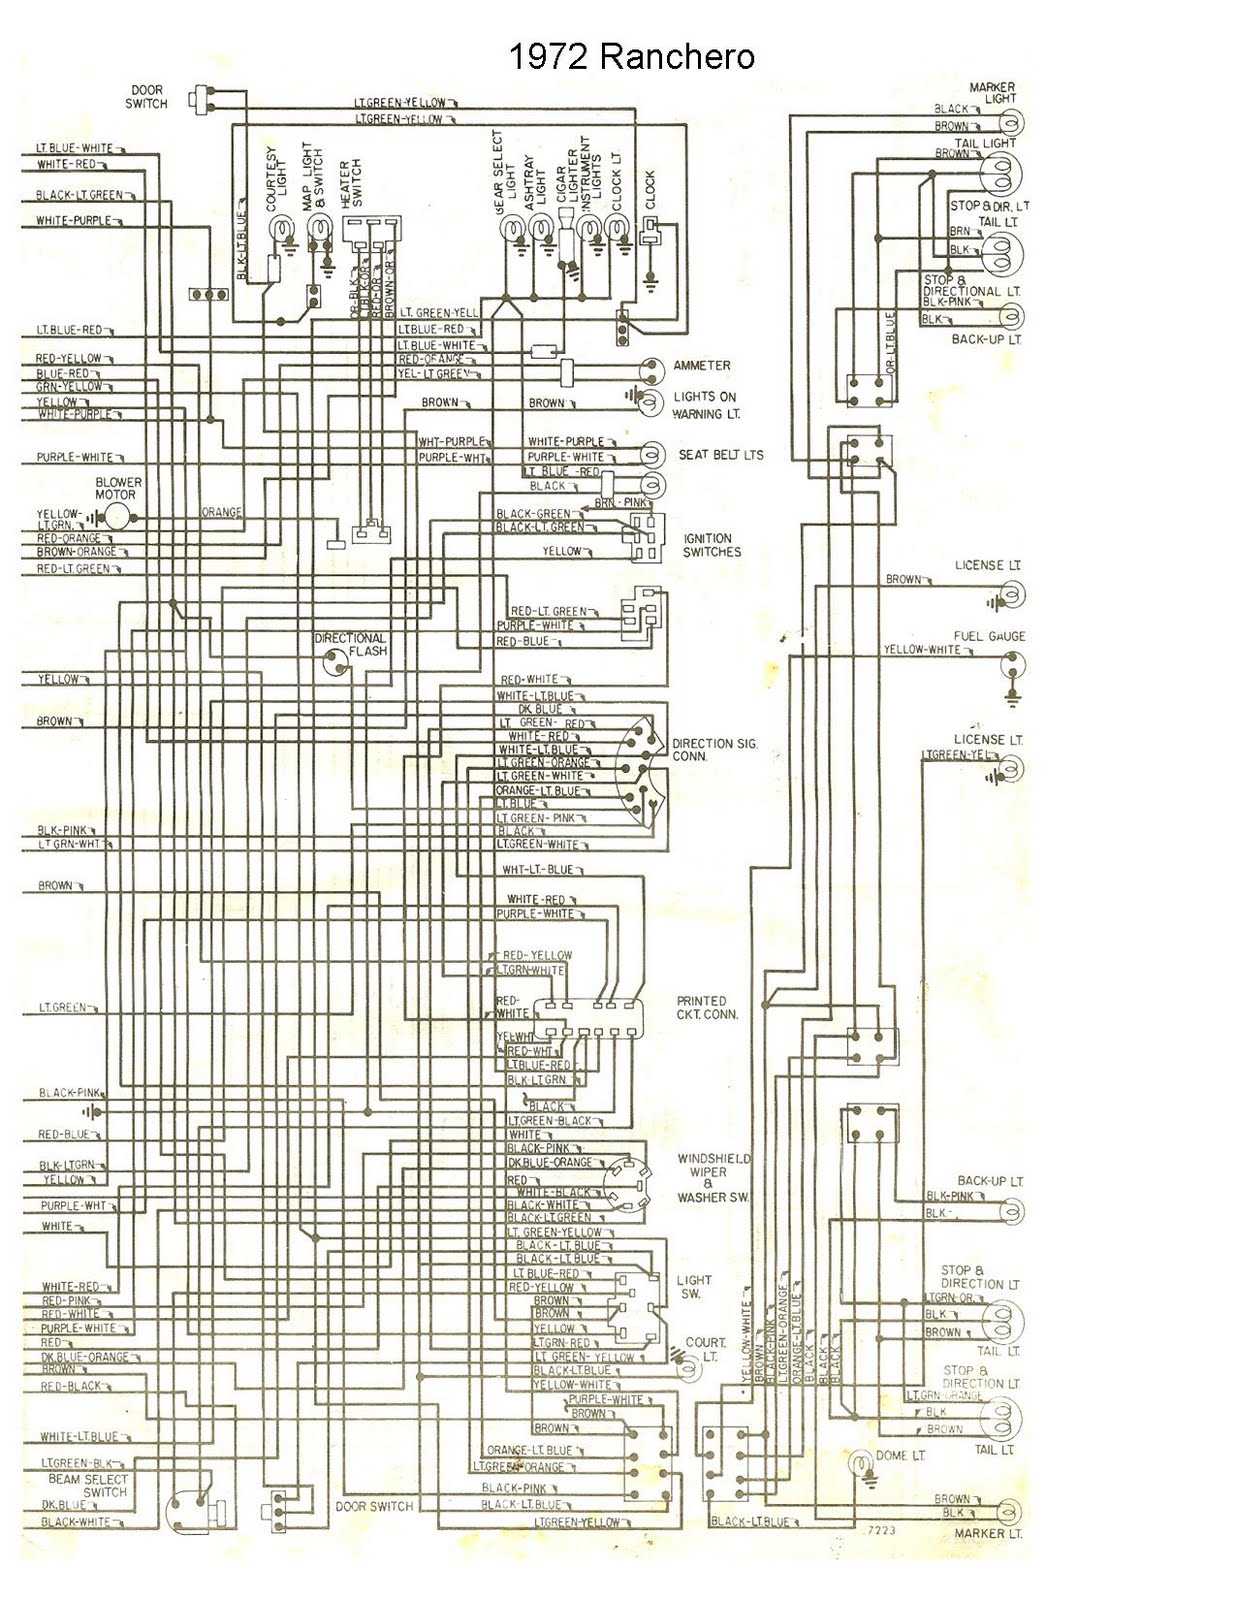 medium resolution of 1970 ford f100 wiring harness schematic diagrams wiring diagram for 1965 falcon wiring diagram for 1962